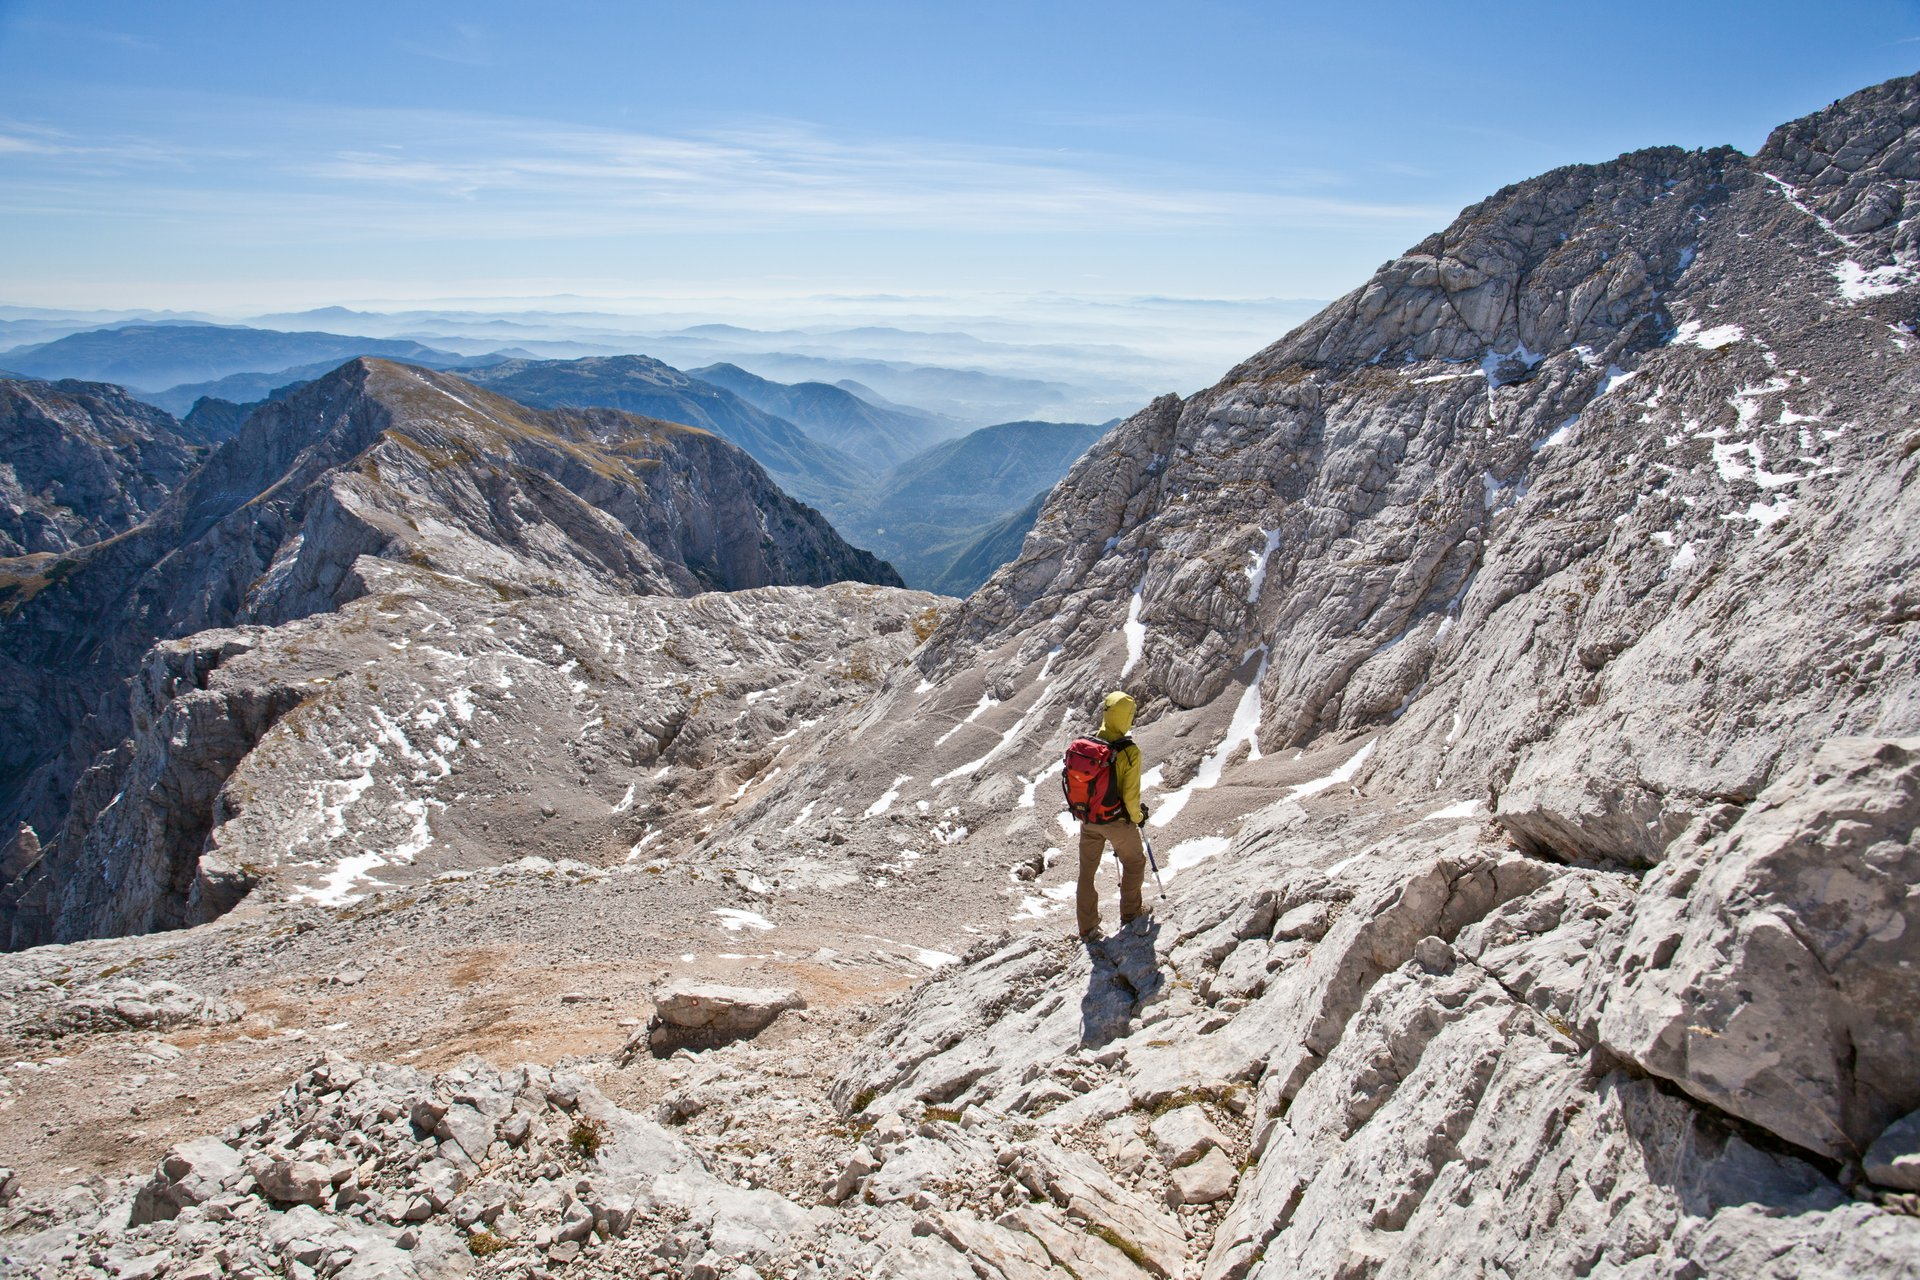 Hiker on Kamnik- Savinja Alps 2020